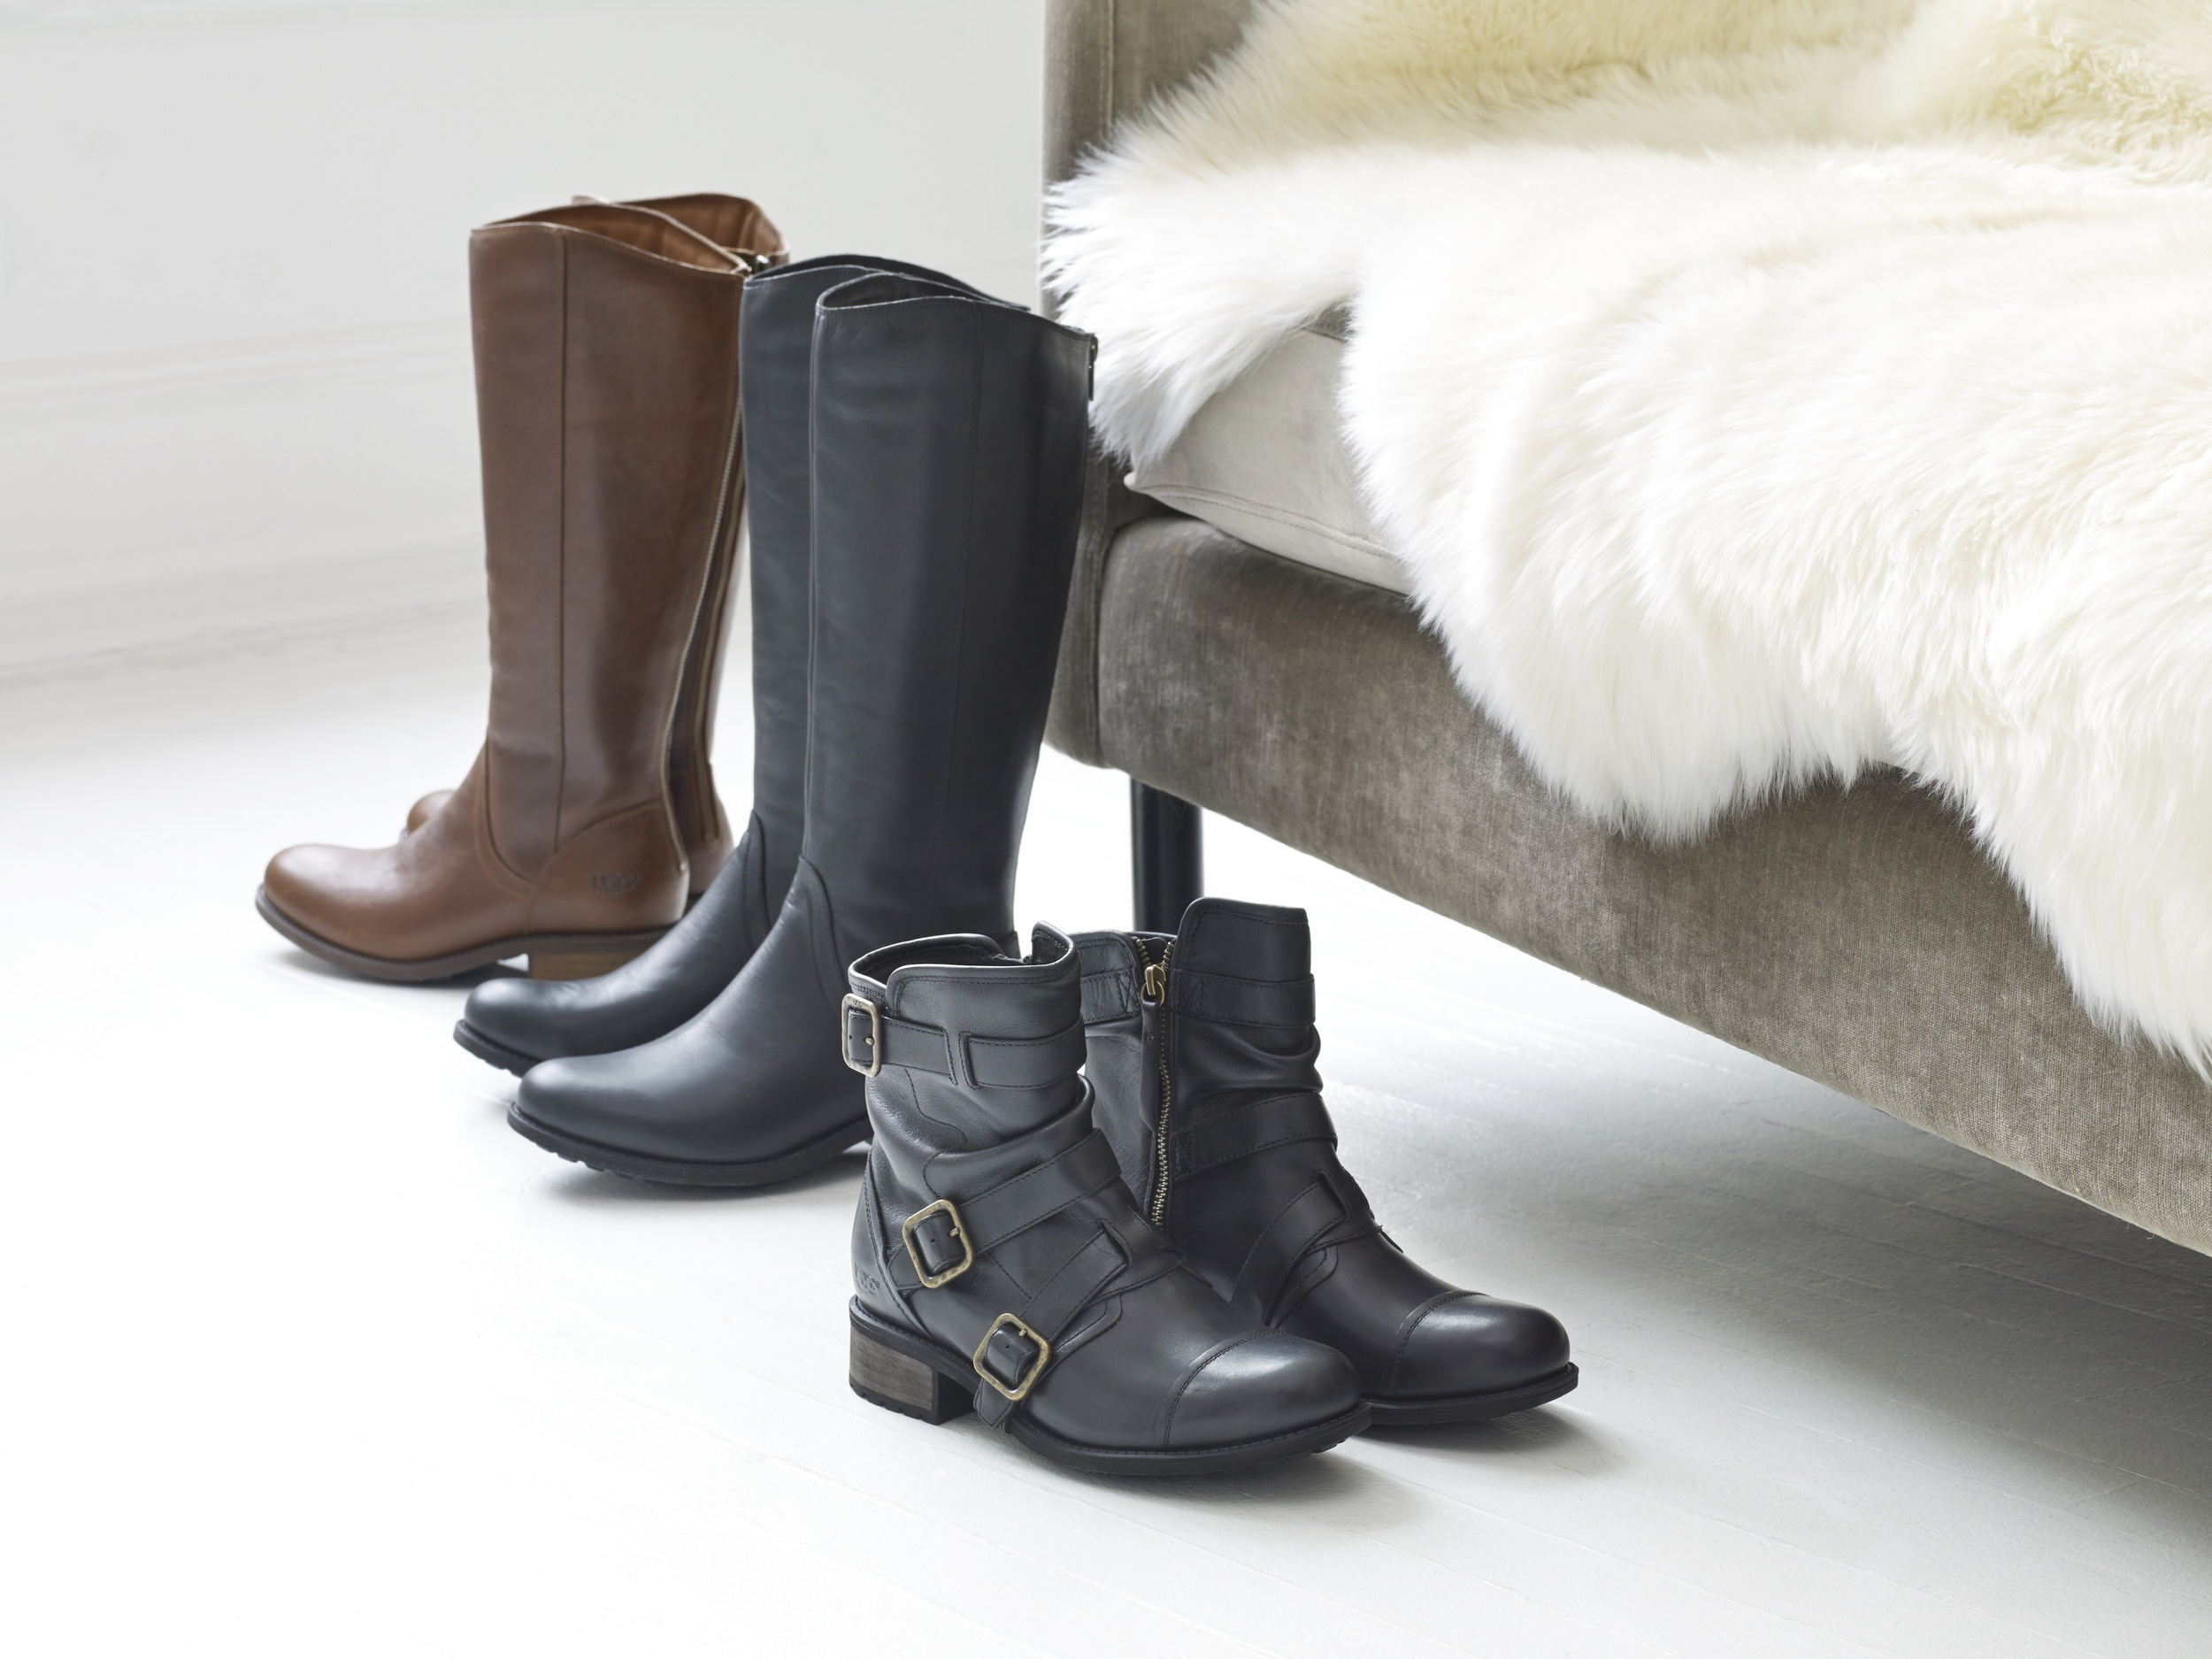 UGG_Seldon_Dark Chestnut _Black_$2100_Finney_Black ( not in HK).jpg